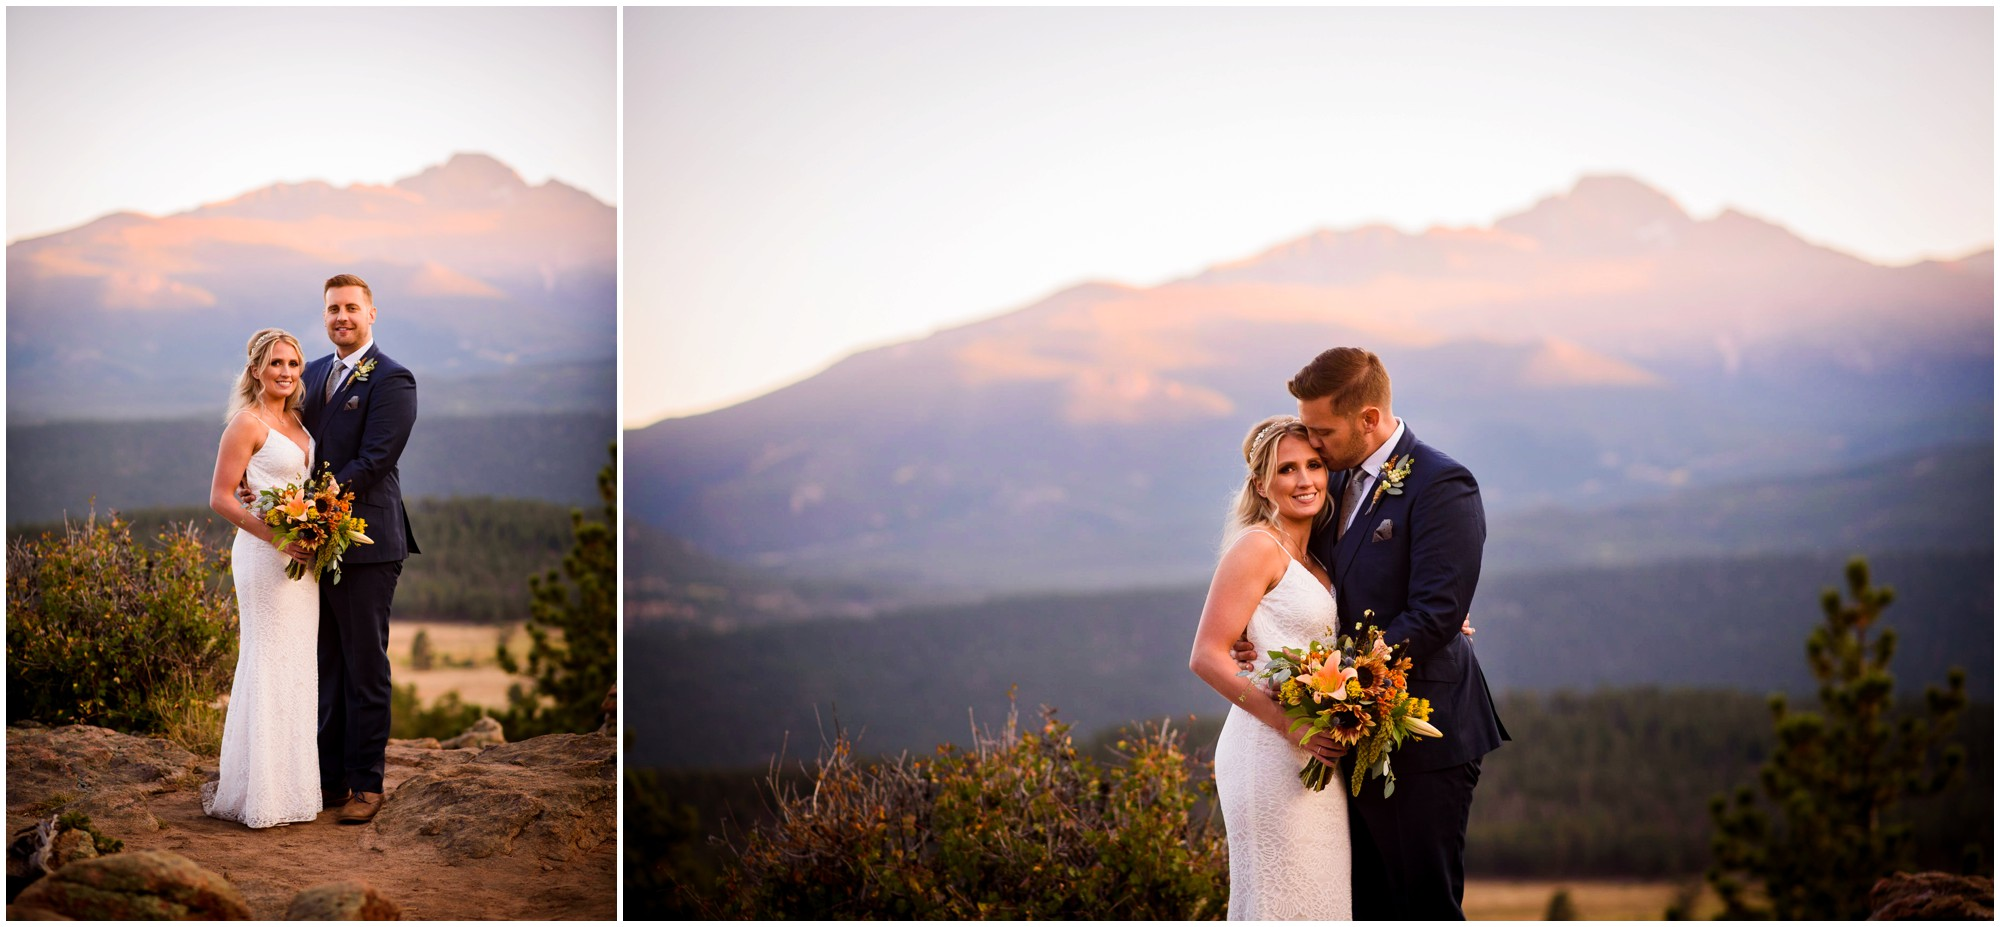 Bride and Groom stand in front of Longs Peak at sunset